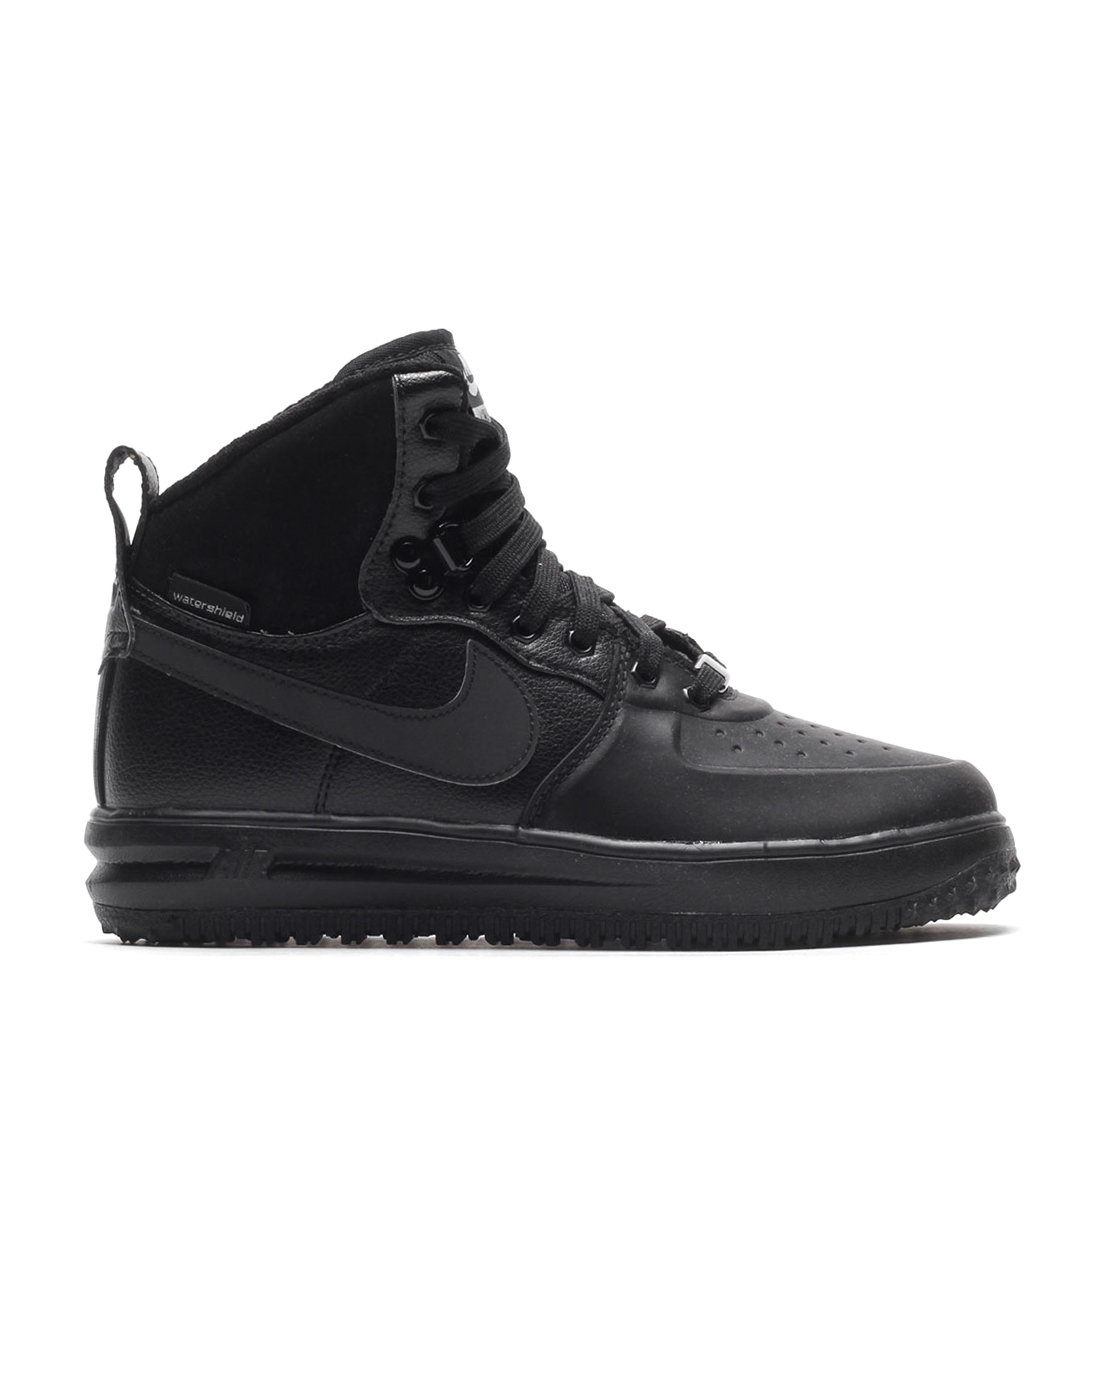 Nike Lunar Force 1 Sneakerboot (GS) Black/Black-Metallic Silver (4.5Y) by Nike (Image #1)